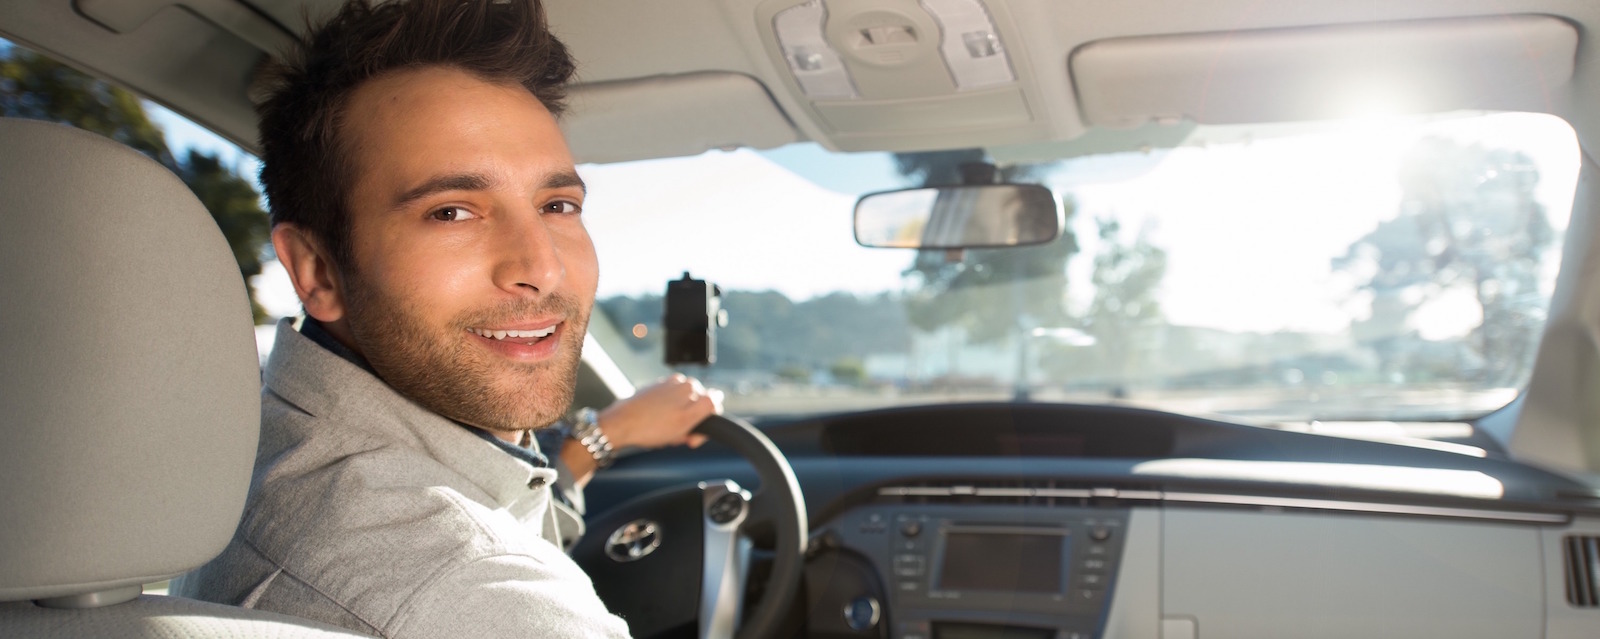 driver_cropped